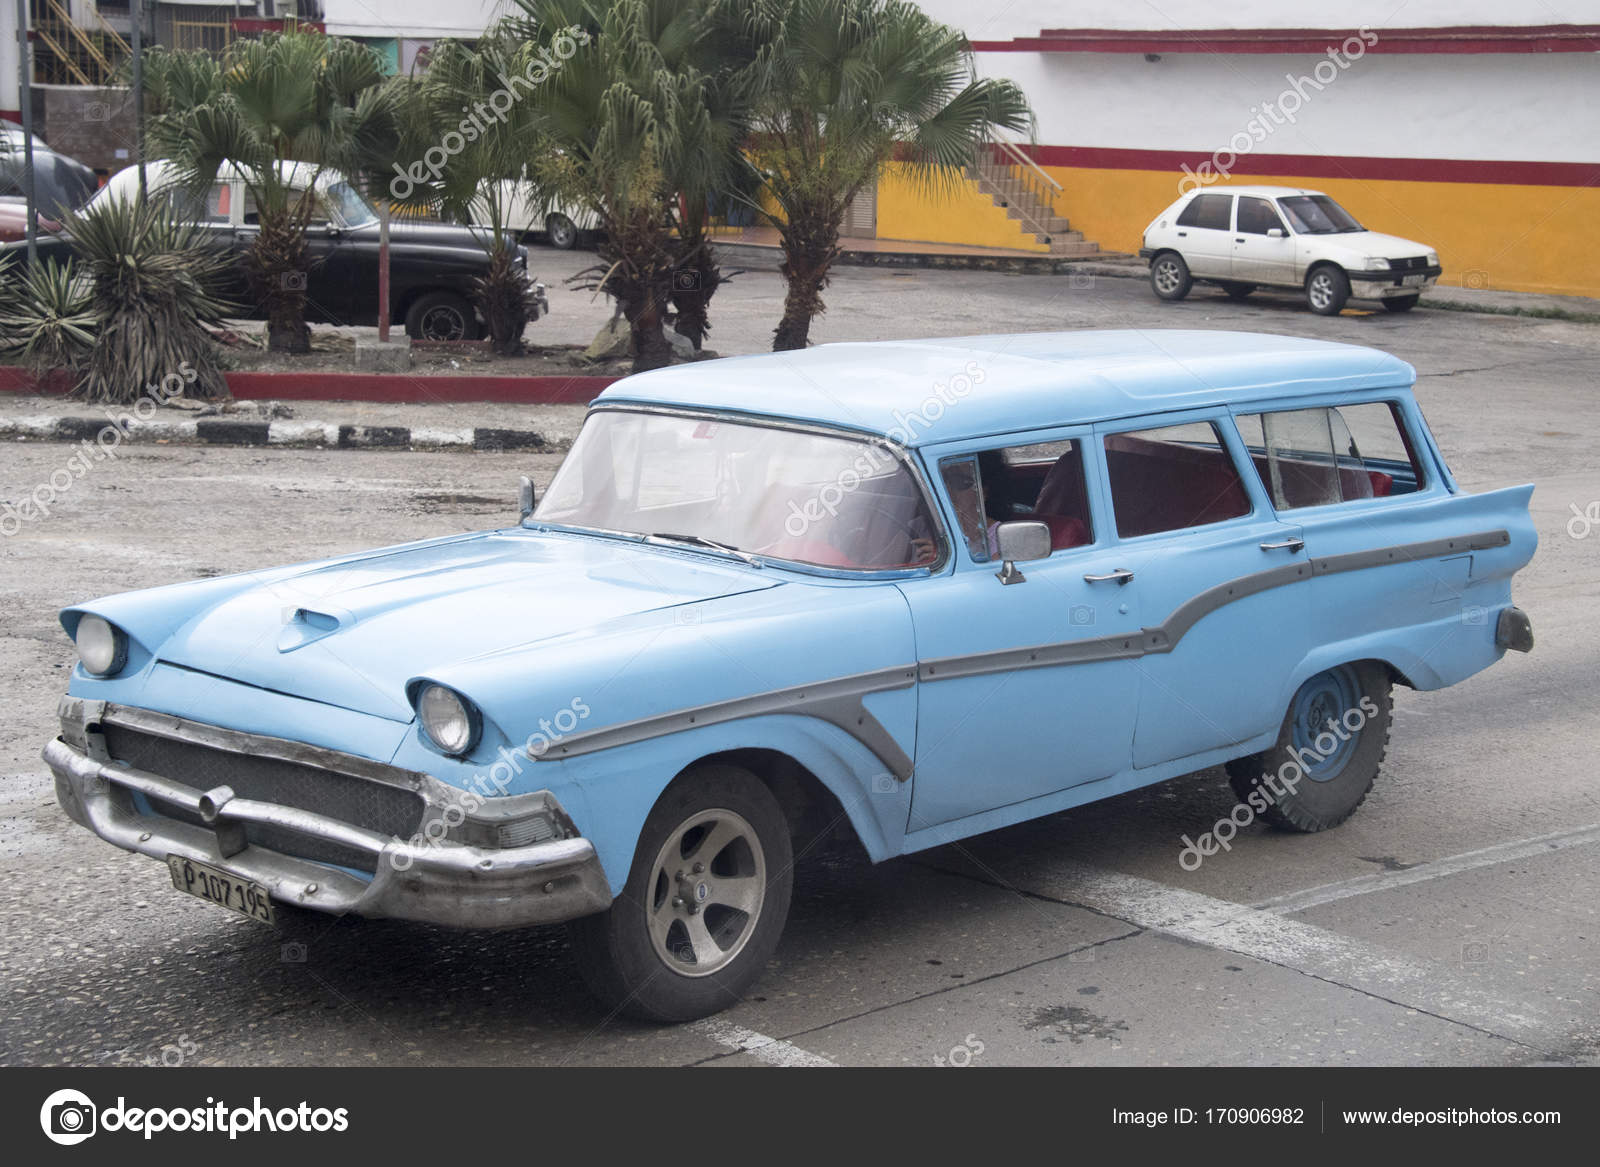 Pictures of Cuba: old vintage cars in action – Stock Editorial ...